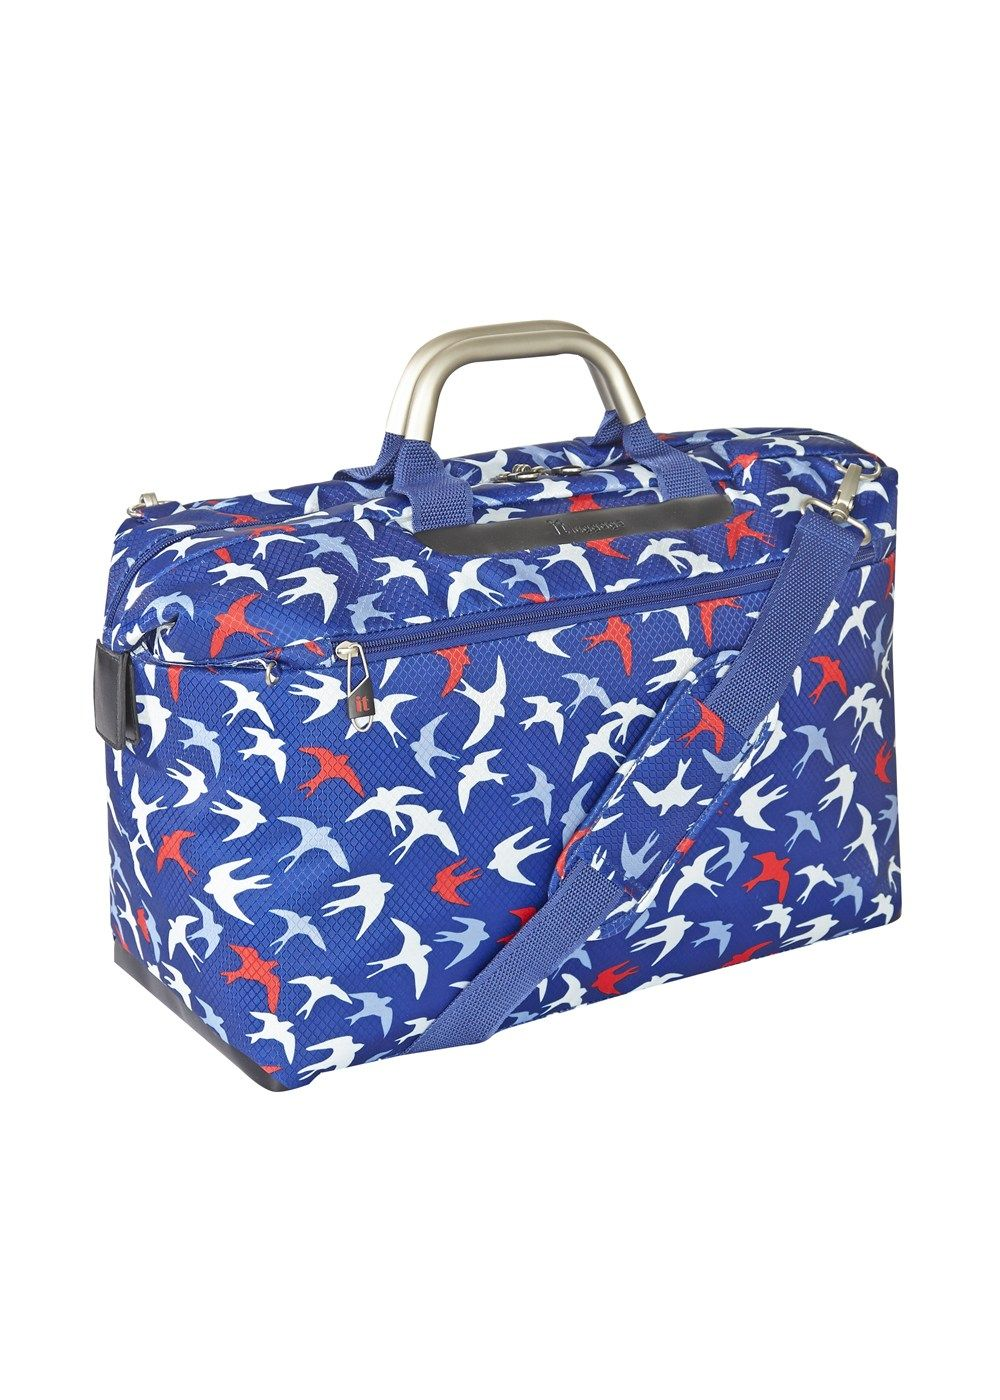 World's Lightest Collection Holdall (43cm x 33.5cm x 21cm) - Matalan  This holdall is a truly great piece from the World's Lightest collection. The bag is made using our strong durable and lightweight fabric and has plenty of room inside for travel sports and days out.